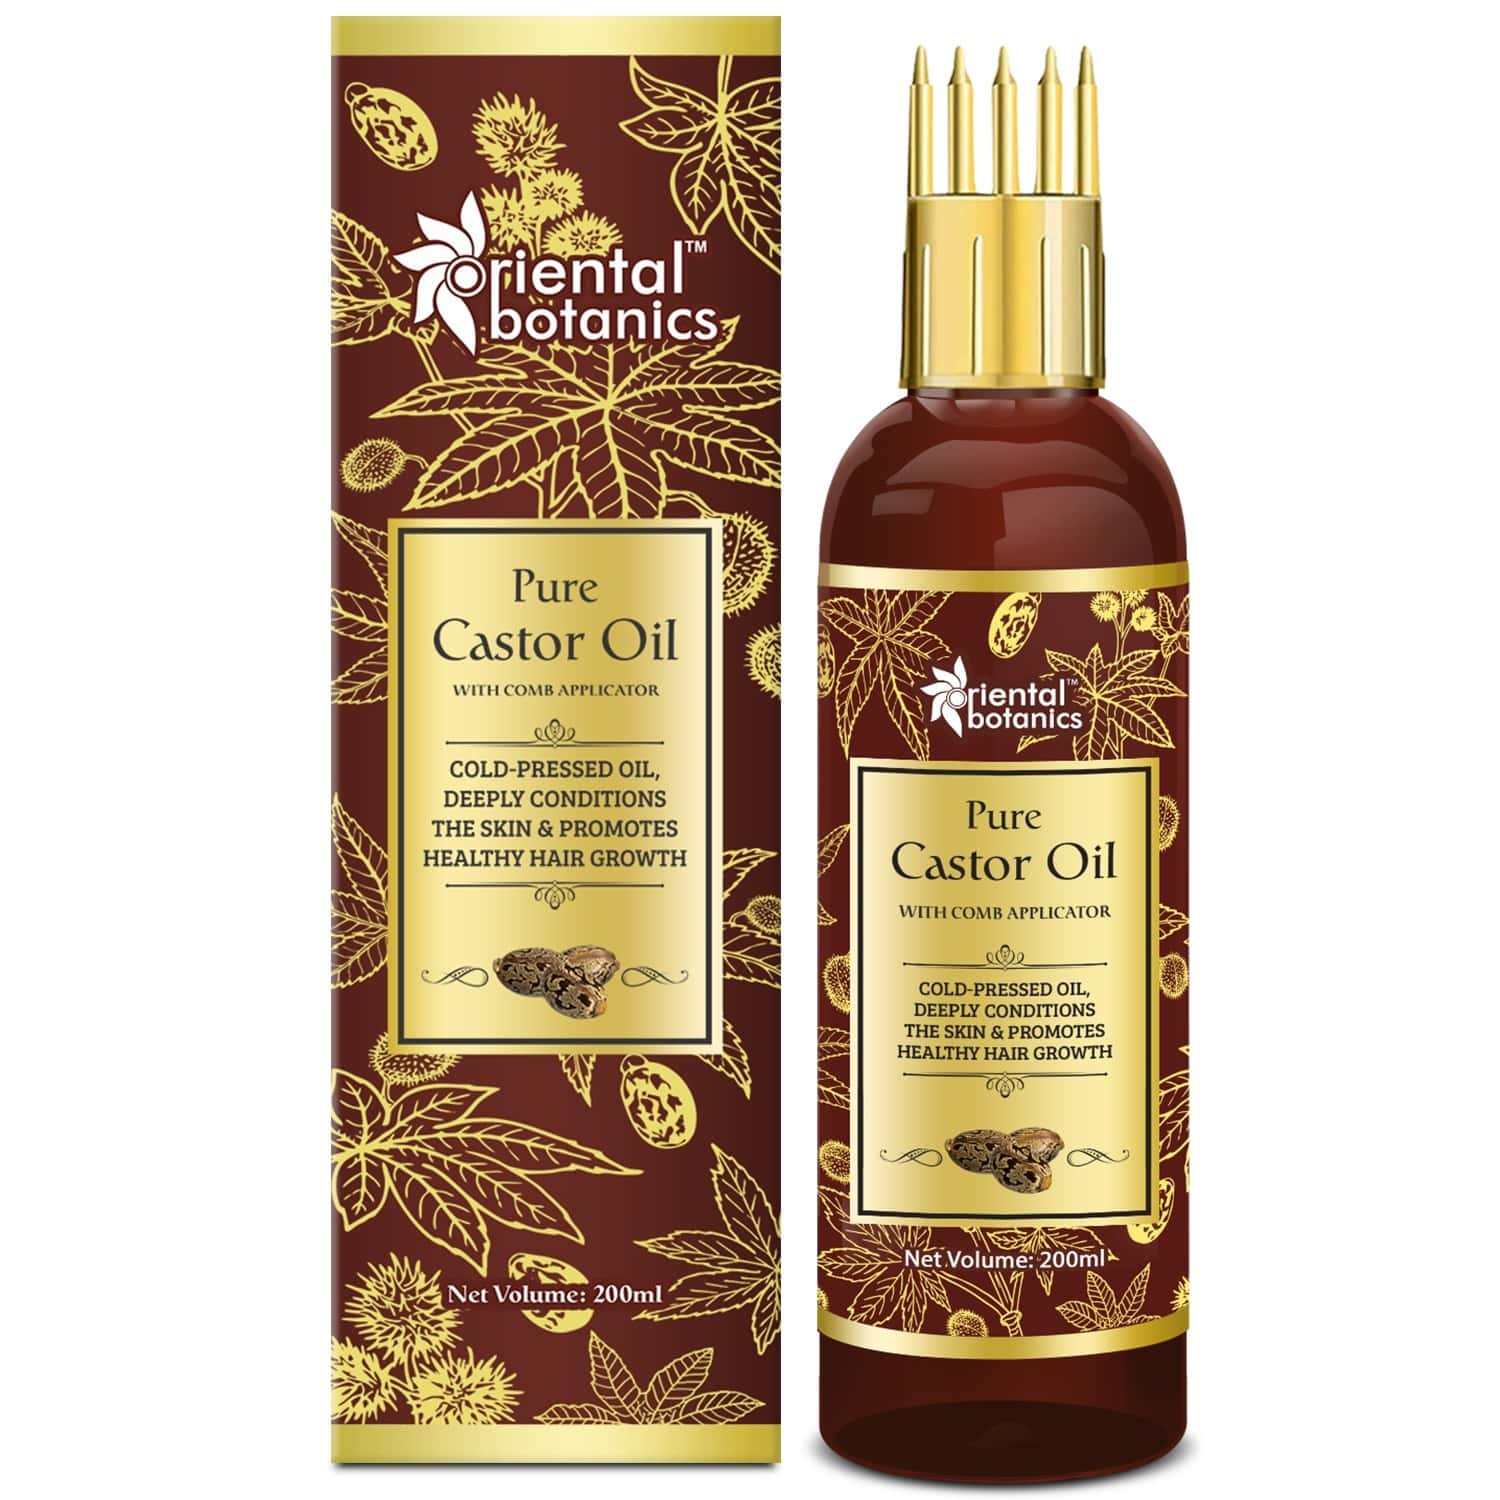 Oriental Botanics Castor Oil - For Eyelashes, Hair And Skin Care - With Comb Applicator - Pure Oil With No Mineral Oil, Silicones - 200 Ml